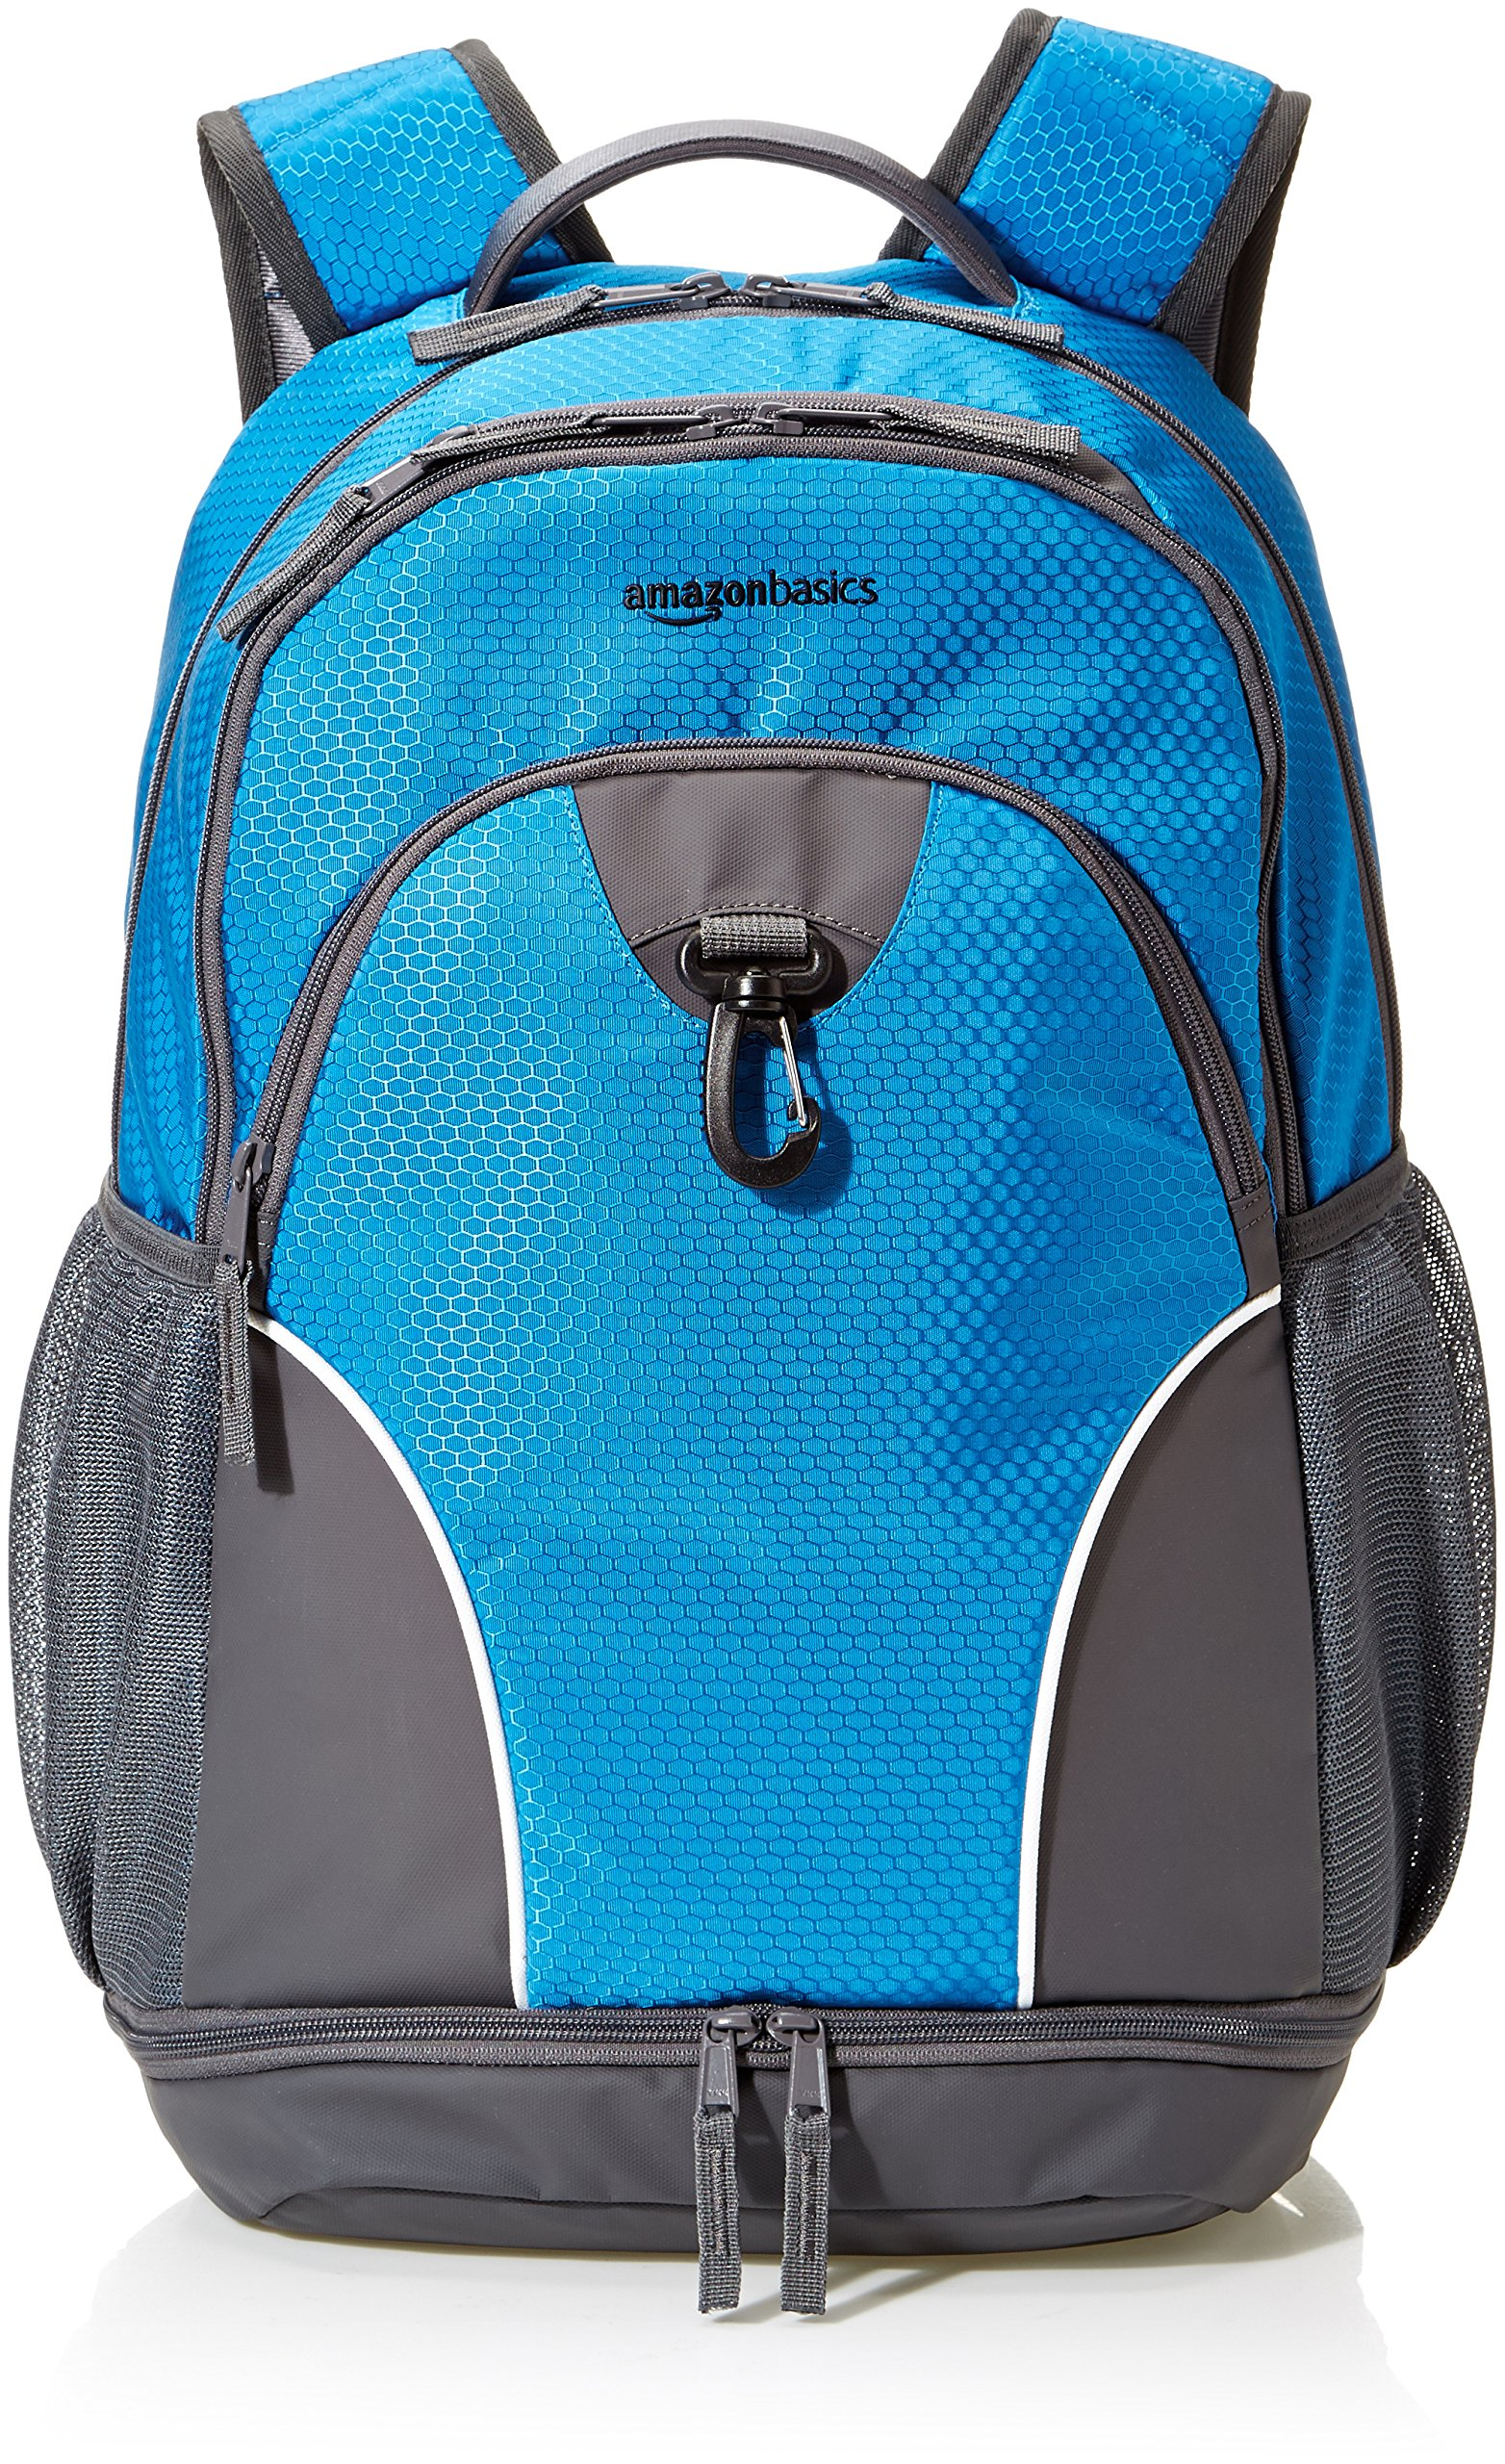 AmazonBasics Sport Laptop Backpack - Blue